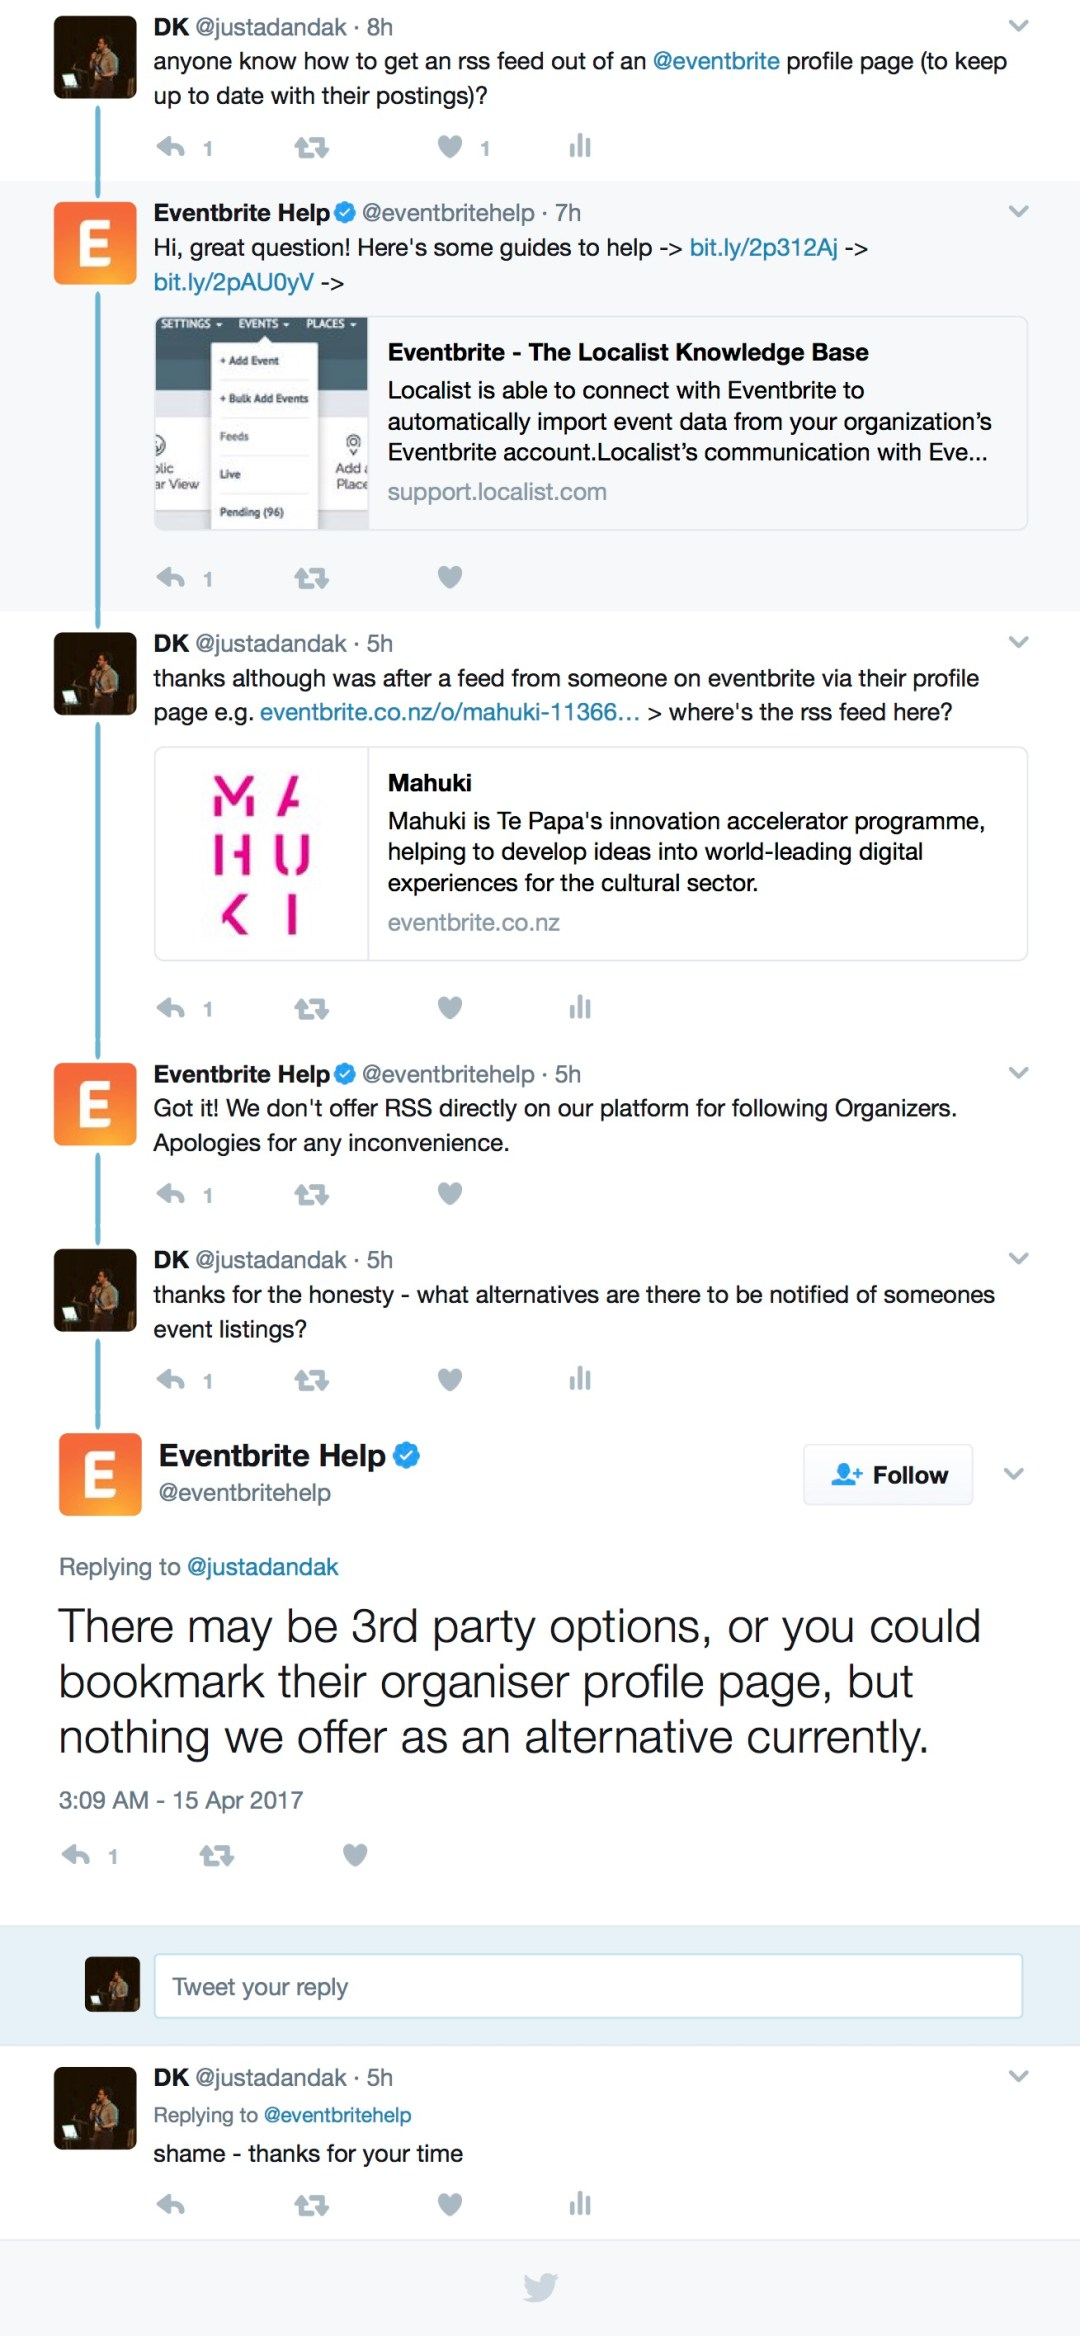 Eventbrite Twitter Discussion